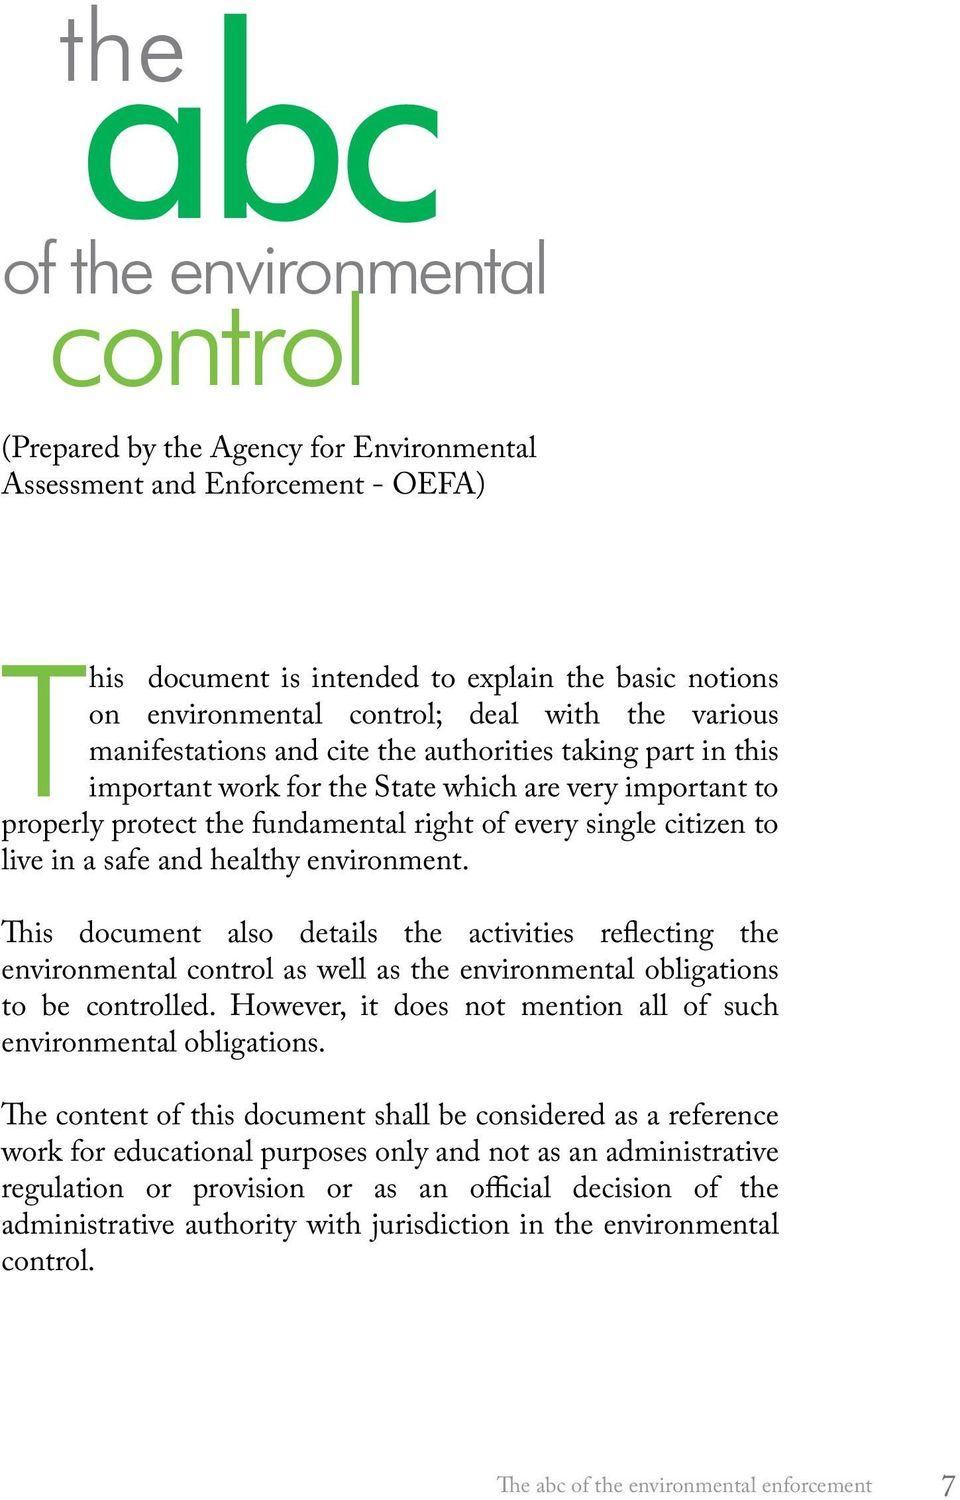 live in a safe and healthy environment. This document also details the activities reflecting the environmental control as well as the environmental obligations to be controlled.